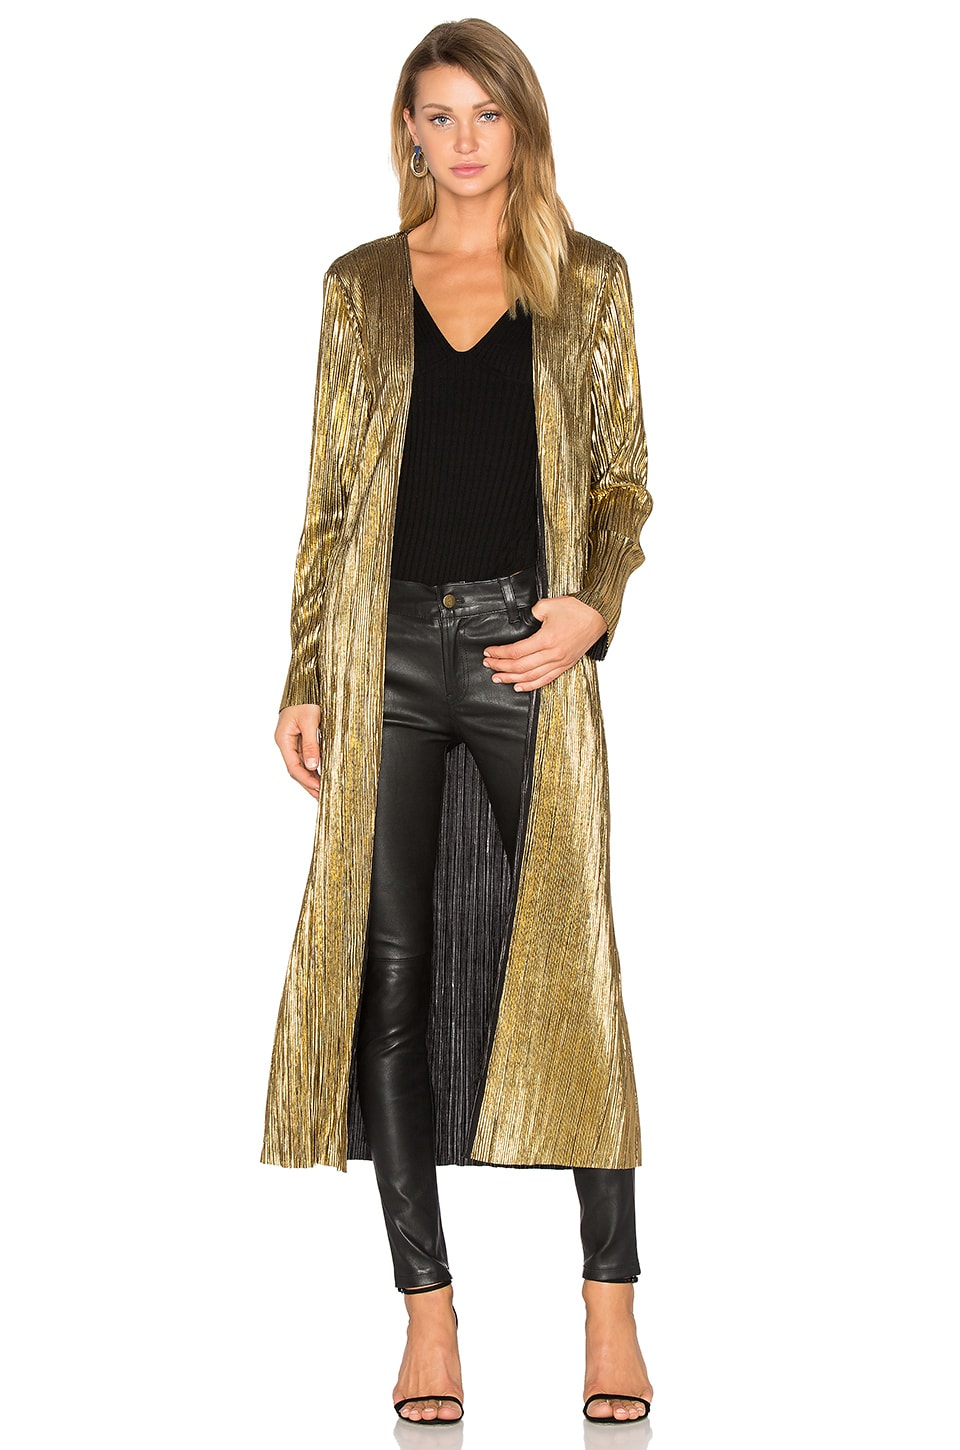 House of Harlow 1960 x REVOLVE Jodie Jacket in Gold | REVOLVE